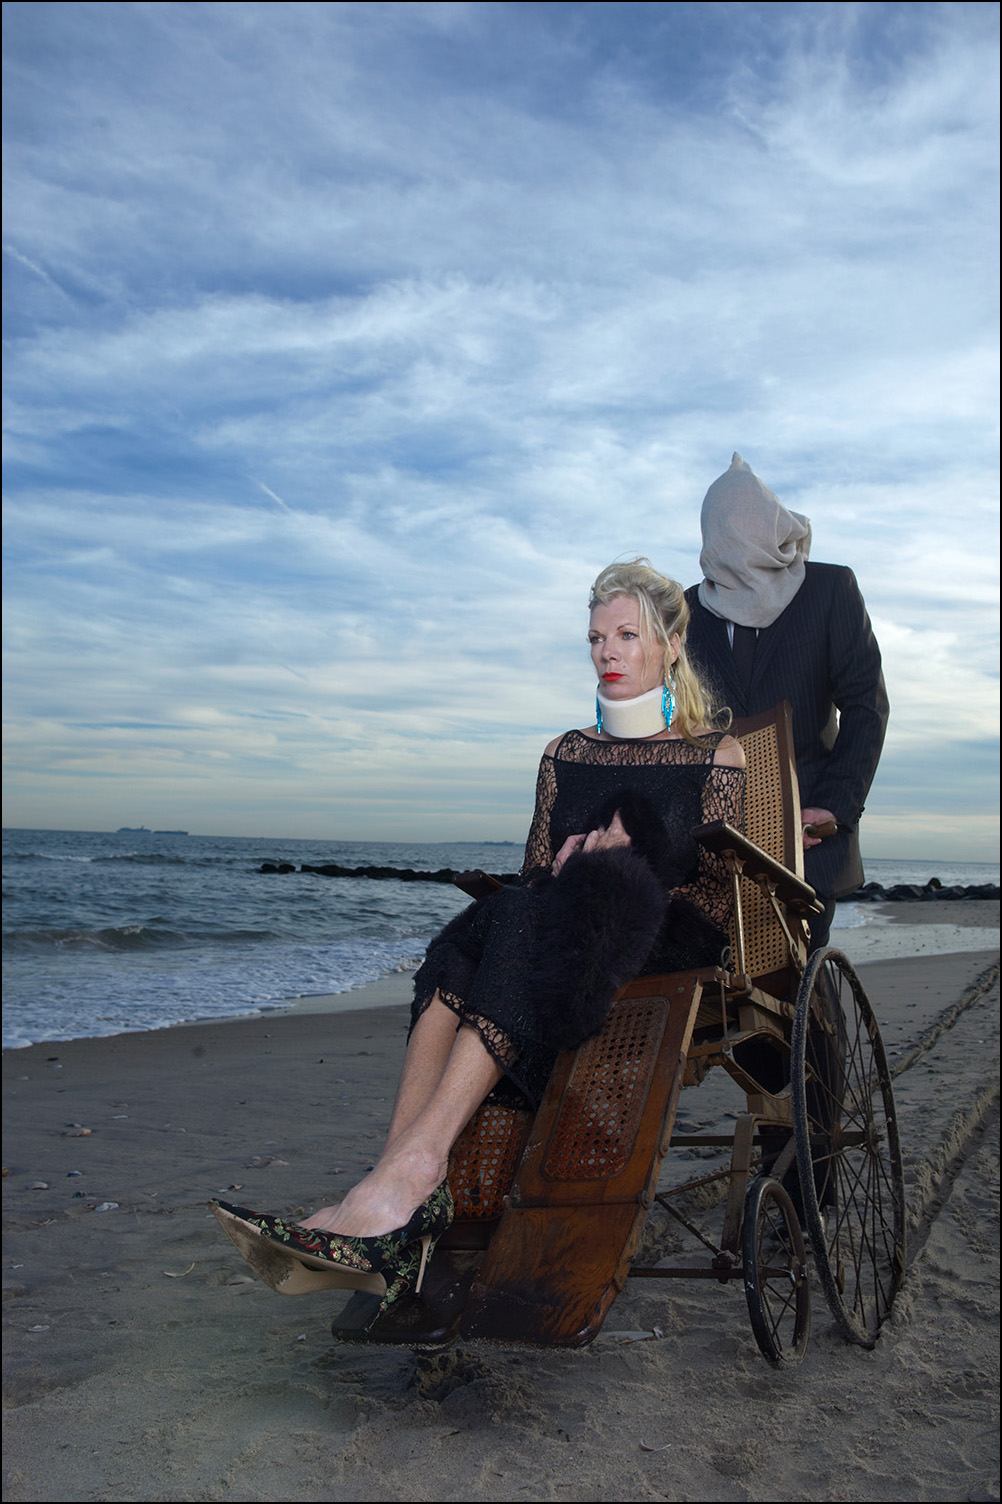 Countess Mara at the Beach, 2010